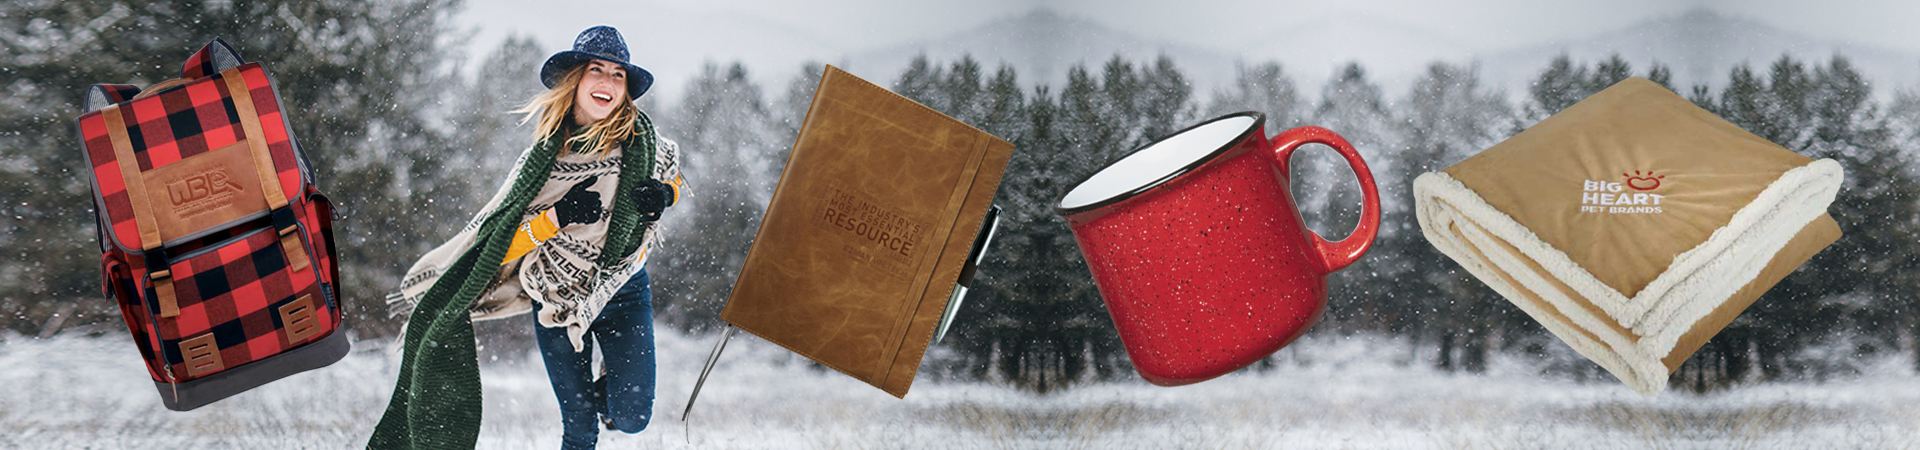 Promotional Corporate Holiday Gifts Image Slider